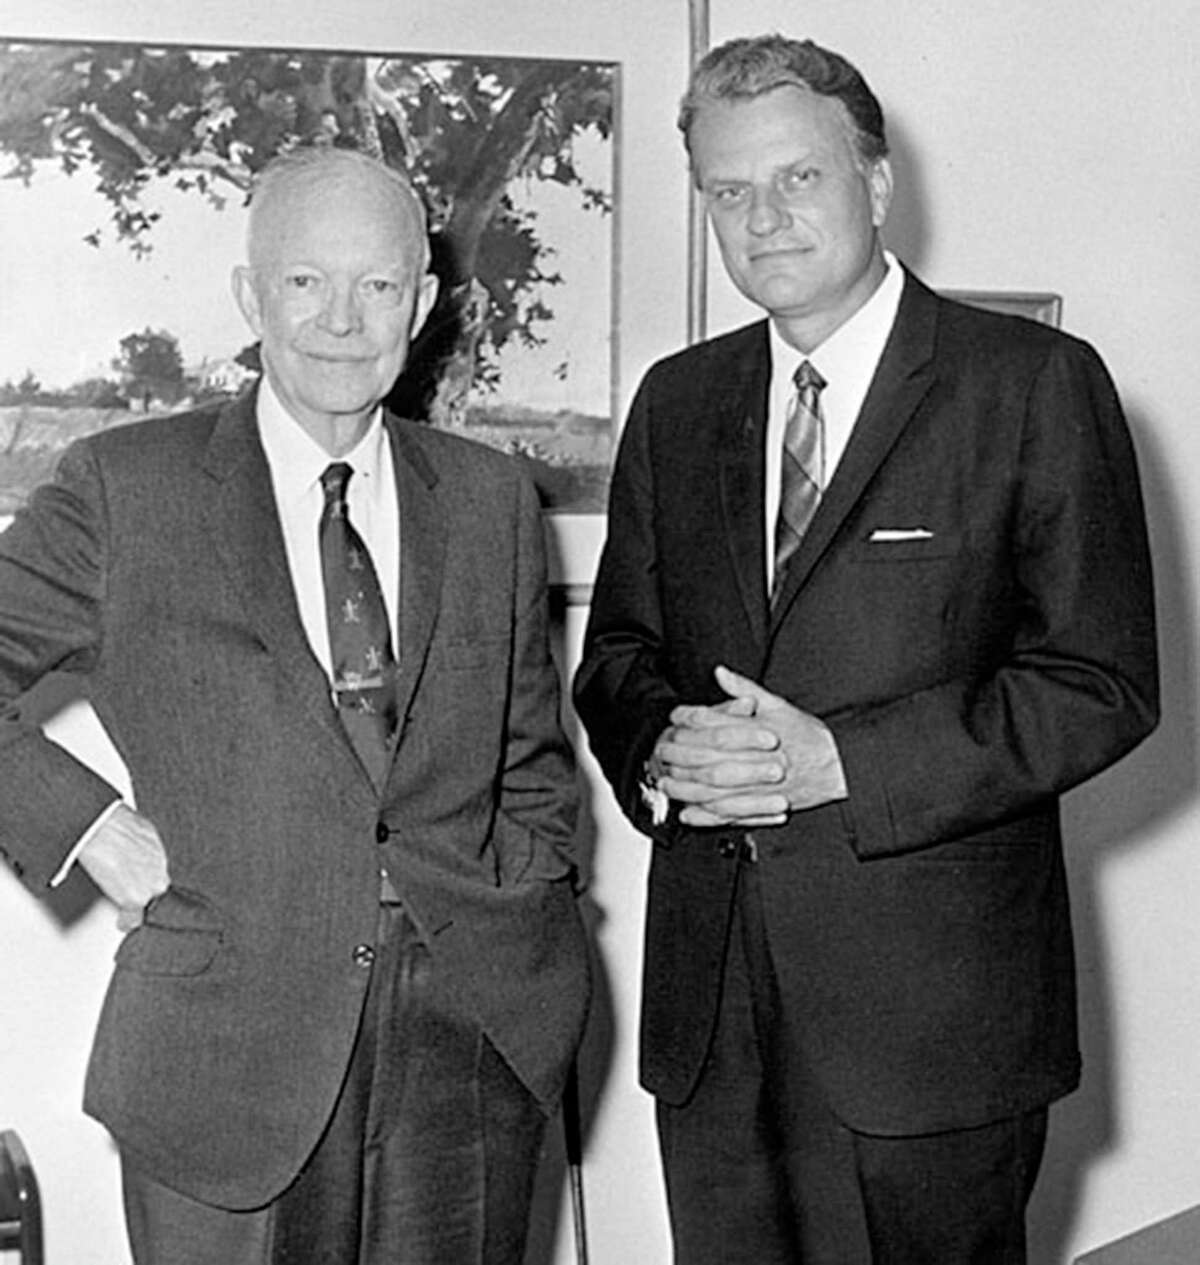 Billy Graham with President Dwight D. Eisenhower in an undated photo.